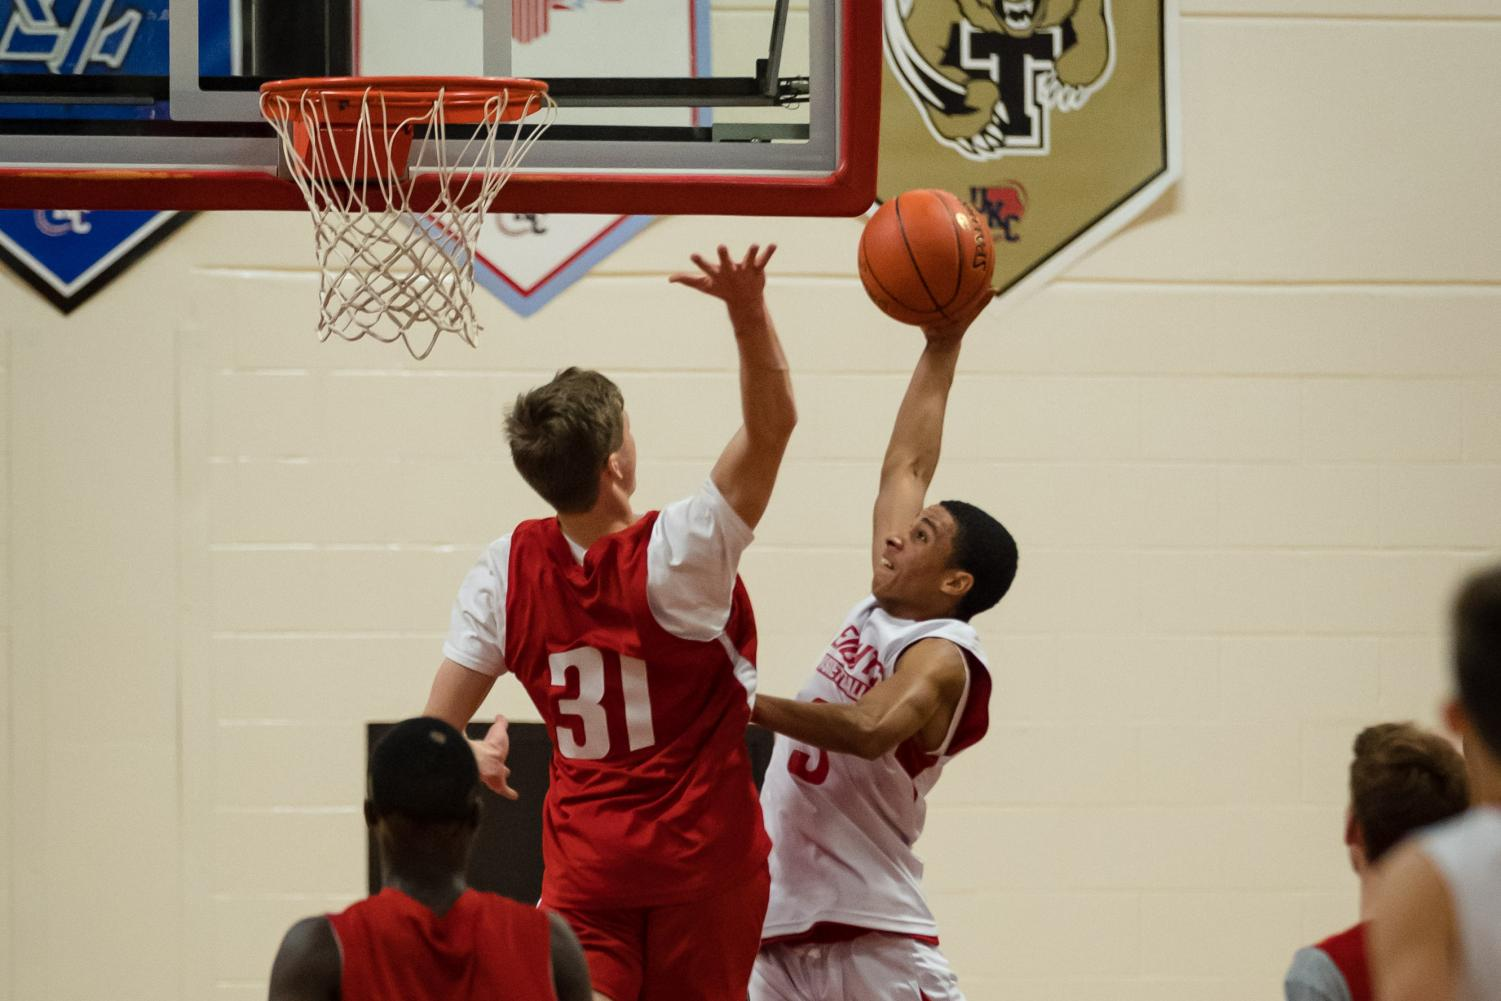 Senior Drew Buchanan soars high and goes for the block on junior Isiah Johnson. They kicked off the night with scripted acts and singing. The boys basketball team scrimmaged for 20 minutes. and were split up into red and white teams.